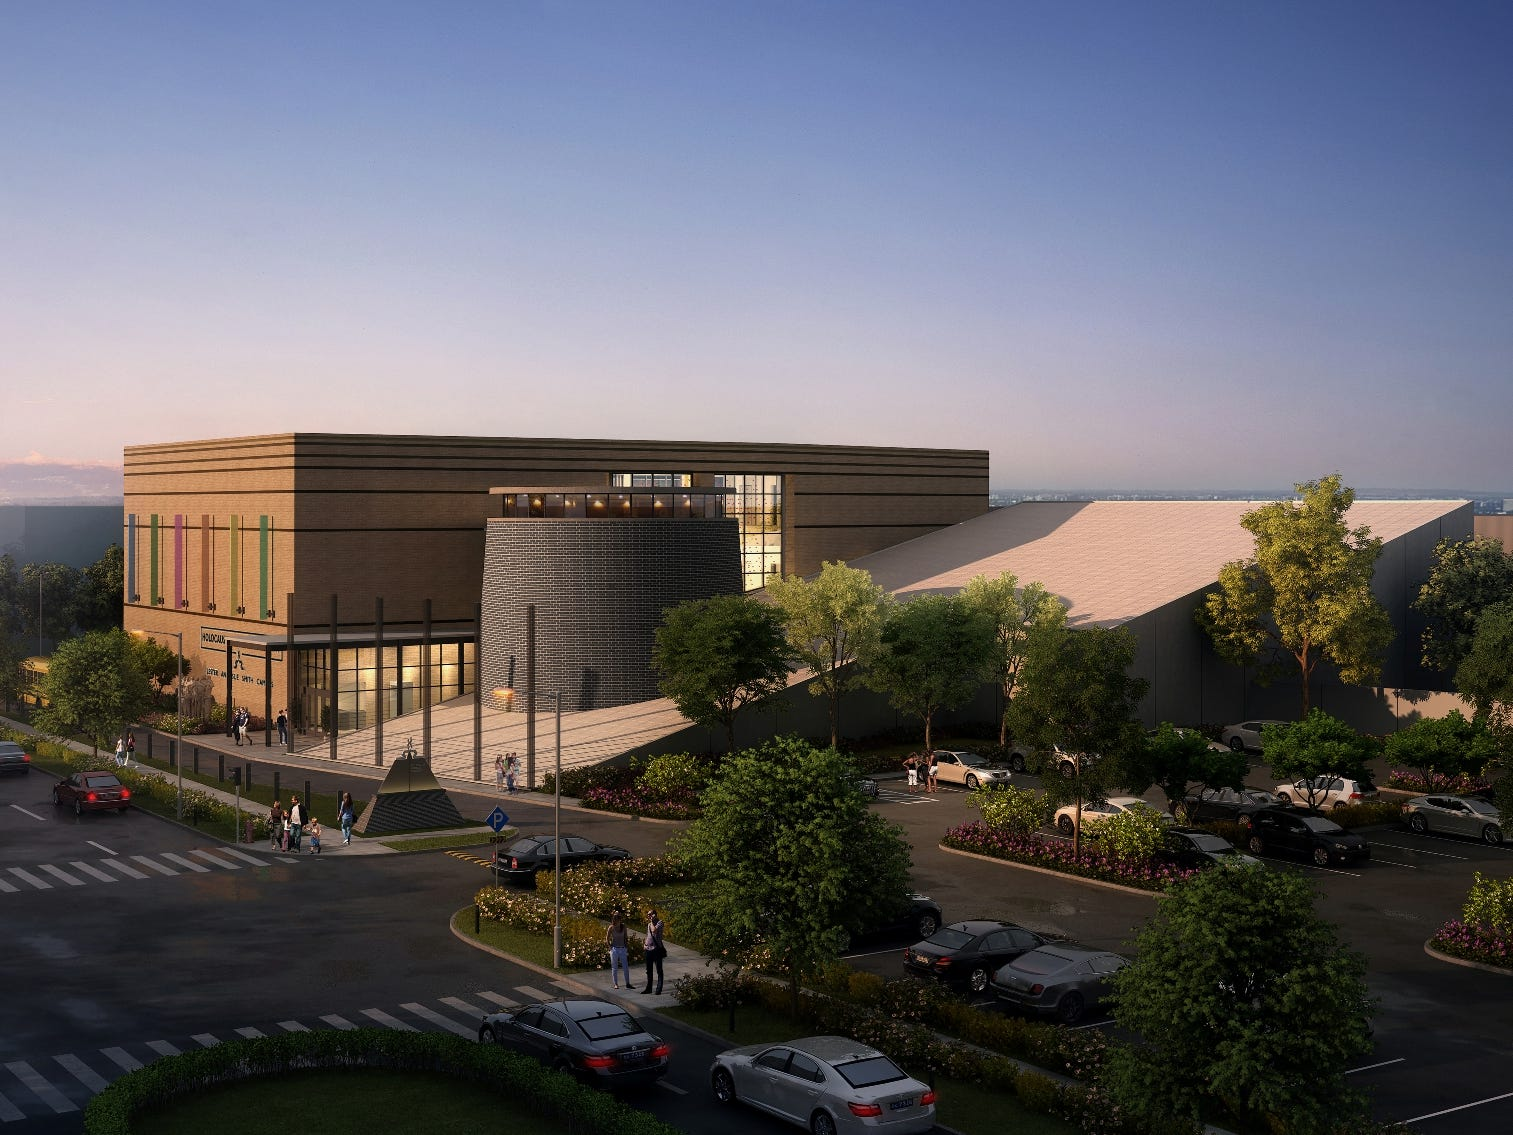 With recent surveys showing that fewer people are aware of the Nazi Holocaust, the re-opening of the Holocaust Museum Houston is particularly timely. The expansion doubles the size of the original museum, and will include artifacts like a German box car, and a Danish rescue boat used to ferry Jews to safety in Sweden.